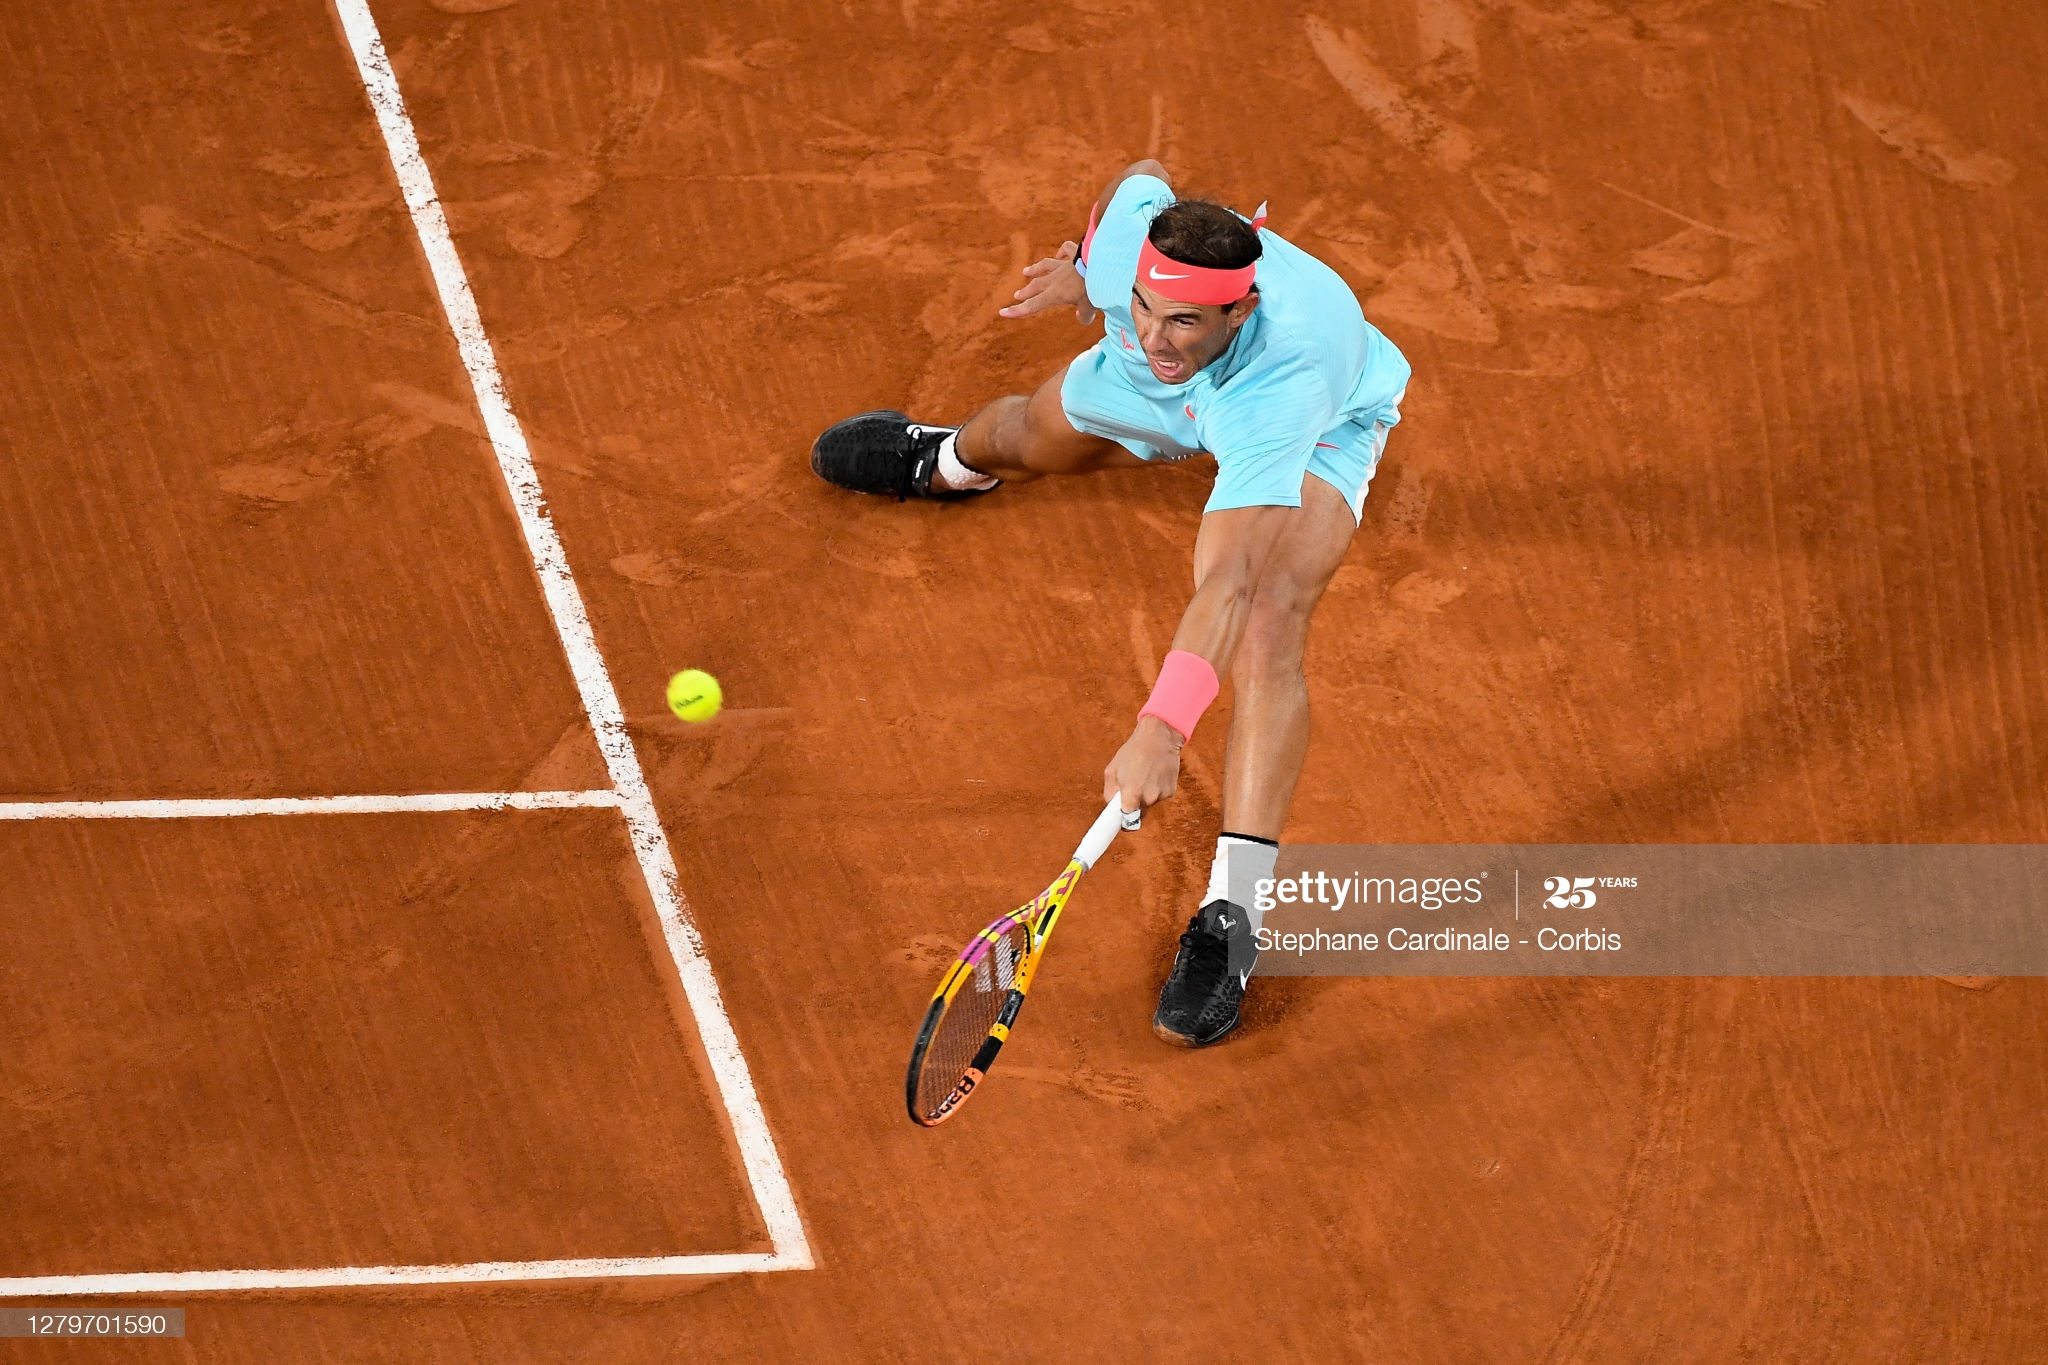 nadal day 15 french open 2020.21